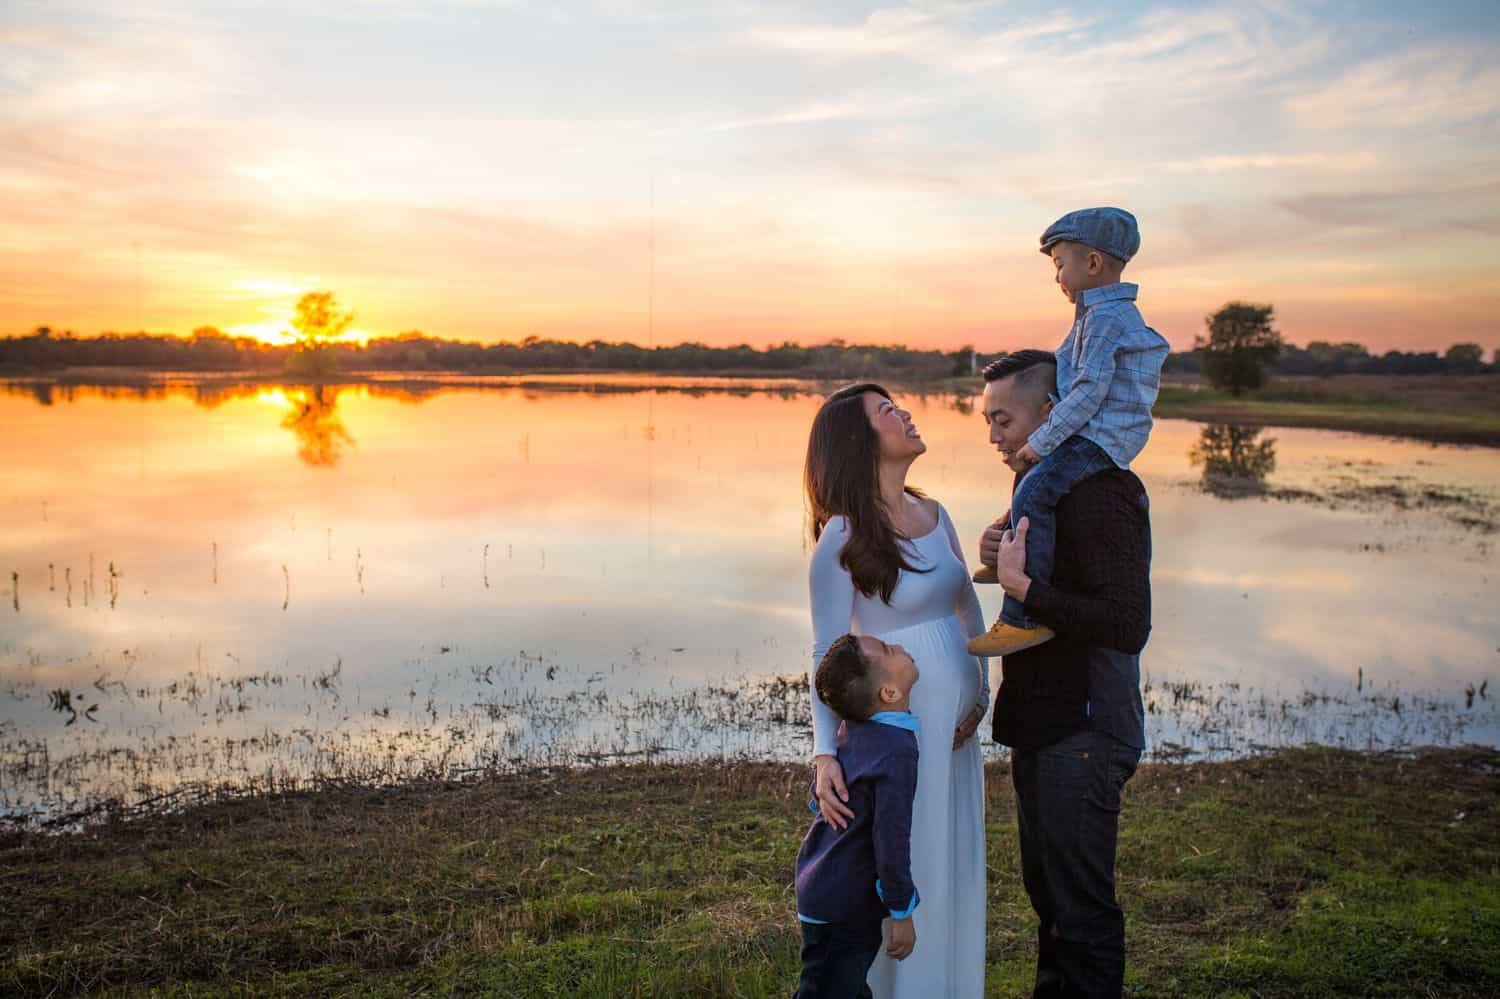 A pregnant mother and her husband stand with their two young sons beside a pond at sunset.